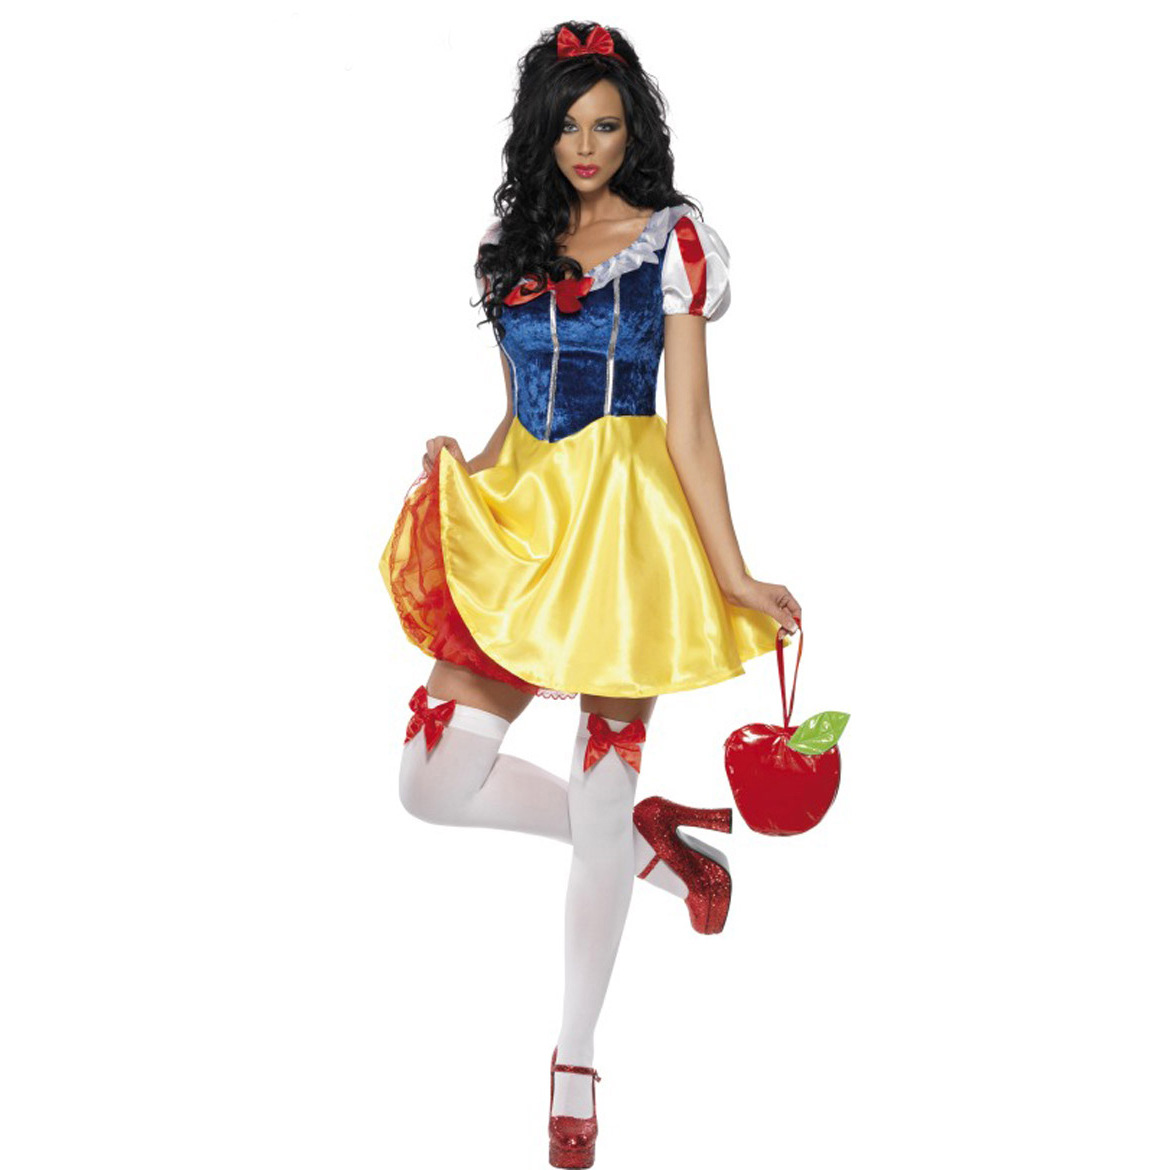 Large Size Game Uniform Character Play Foreign Trade Europe And America Women's Halloween Clothing Sexy Snow White Princess Dres